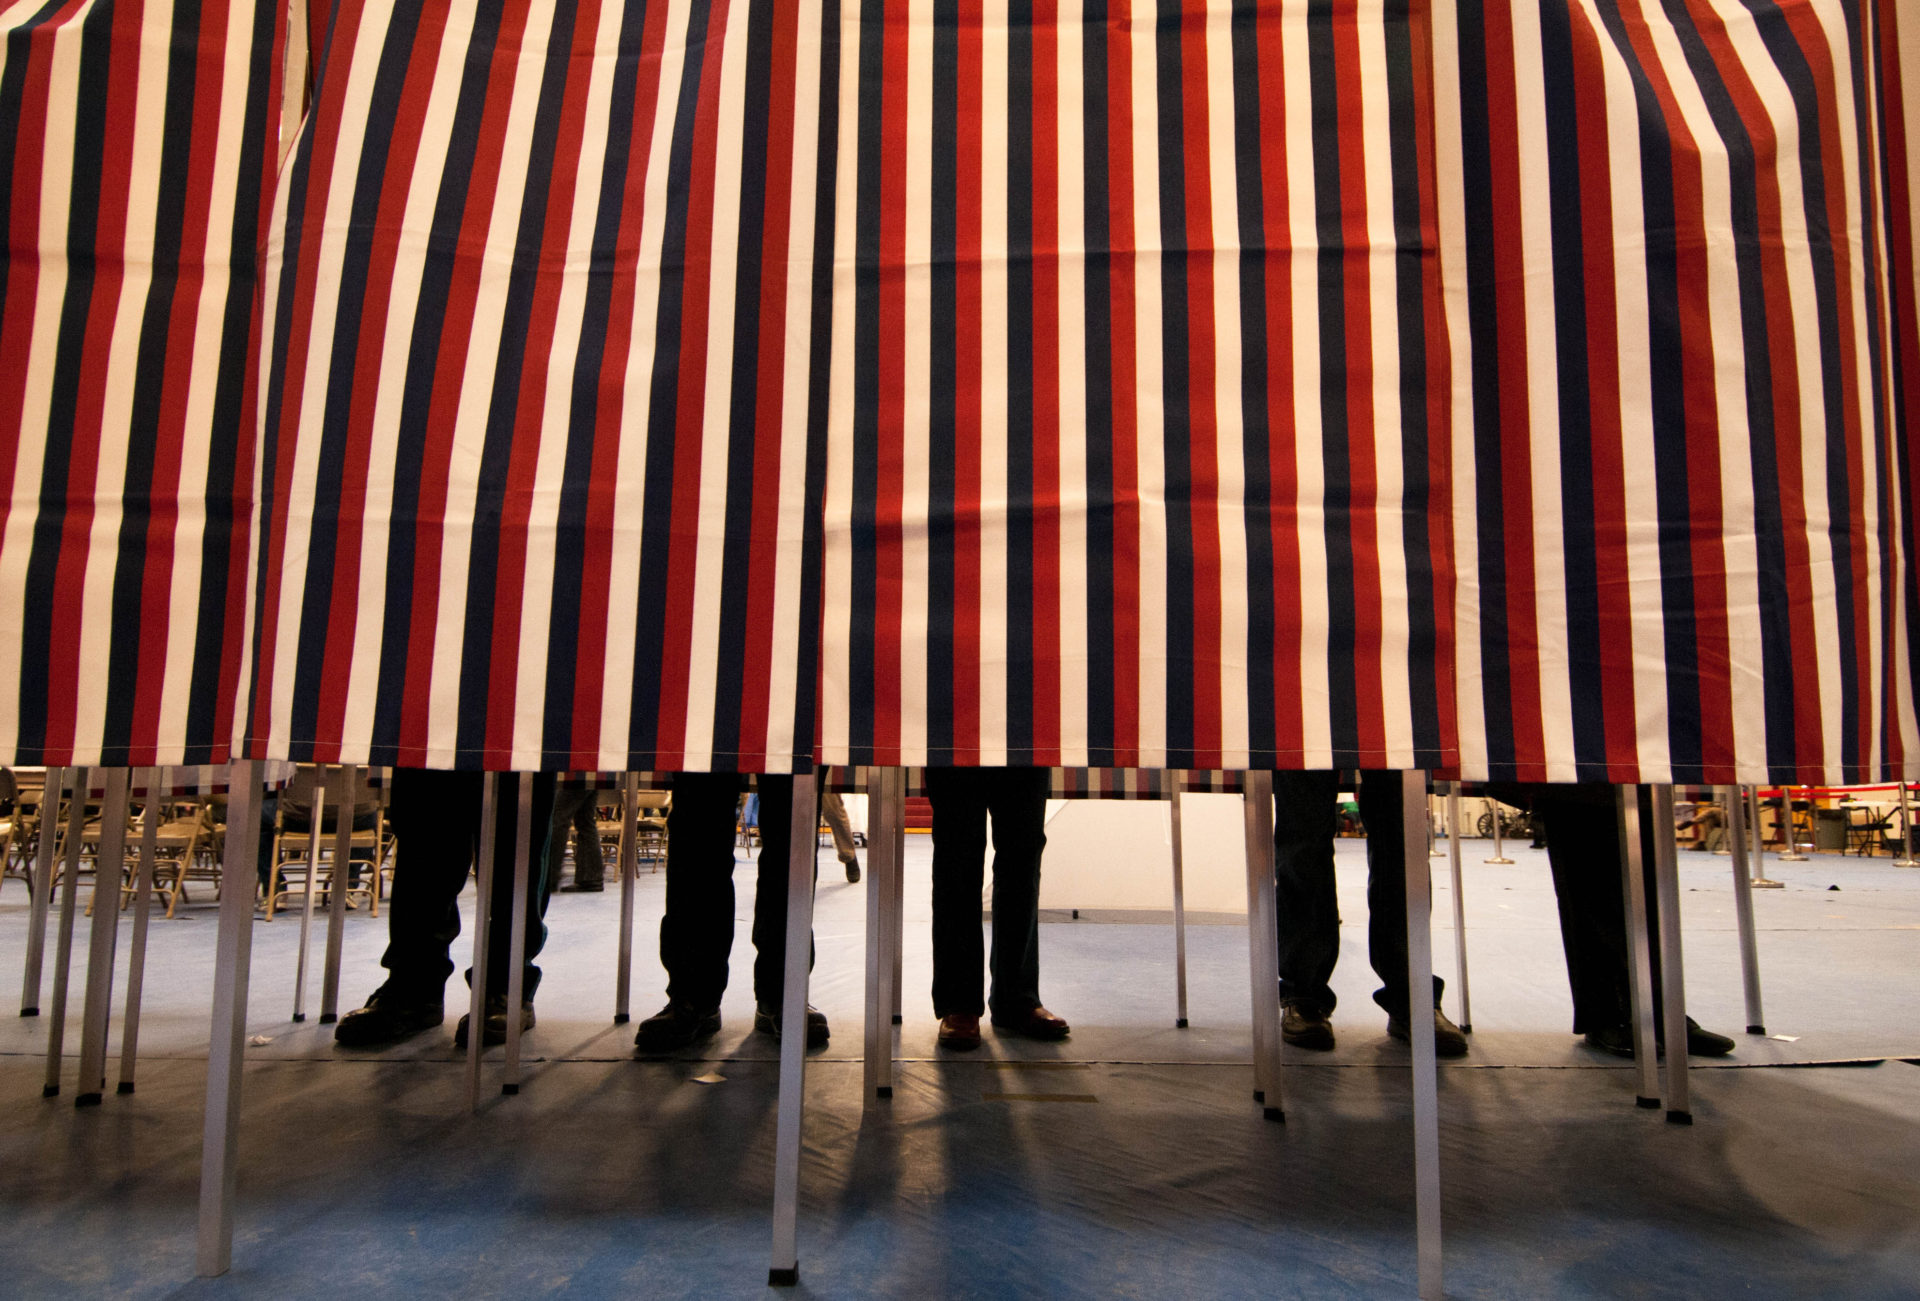 In Wake of Midterm Elections, 'Experts' Vehemently Oppose Blockchain in Voting